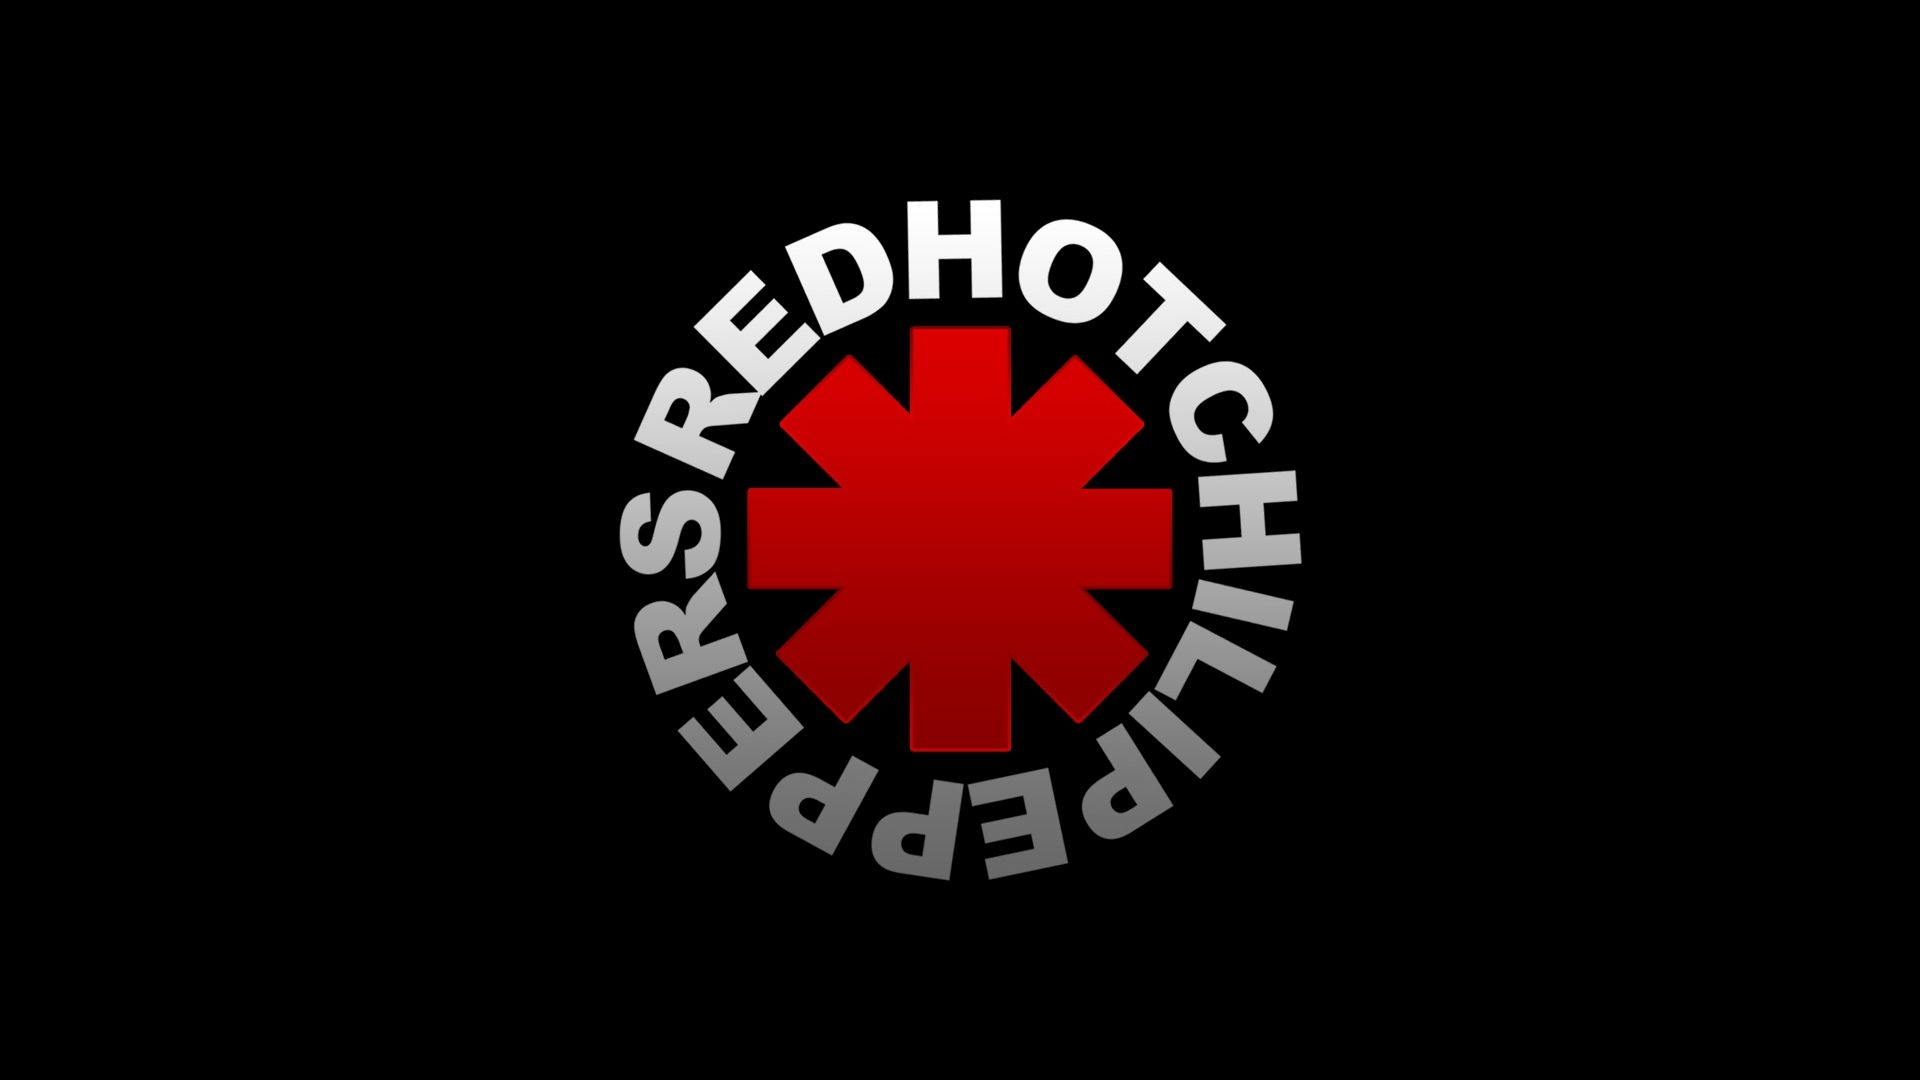 Red Hot Chili Peppers Wallpapers HD Download wallpaper Music 1920x1080